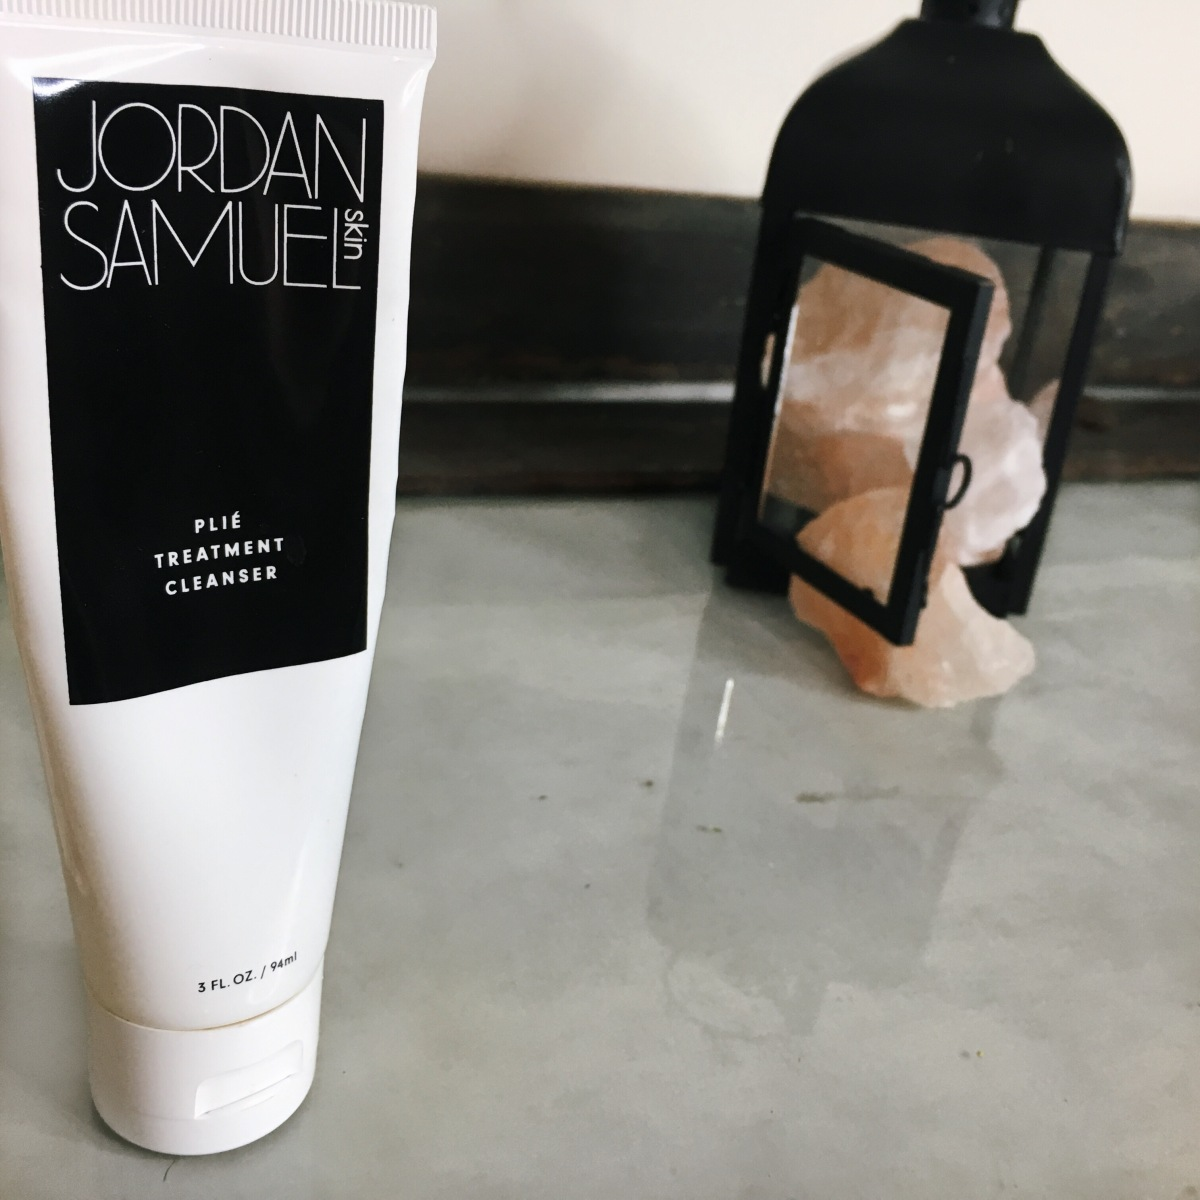 Jordan Samuel – The After Show (Plie) Treatment Cleanser – Review